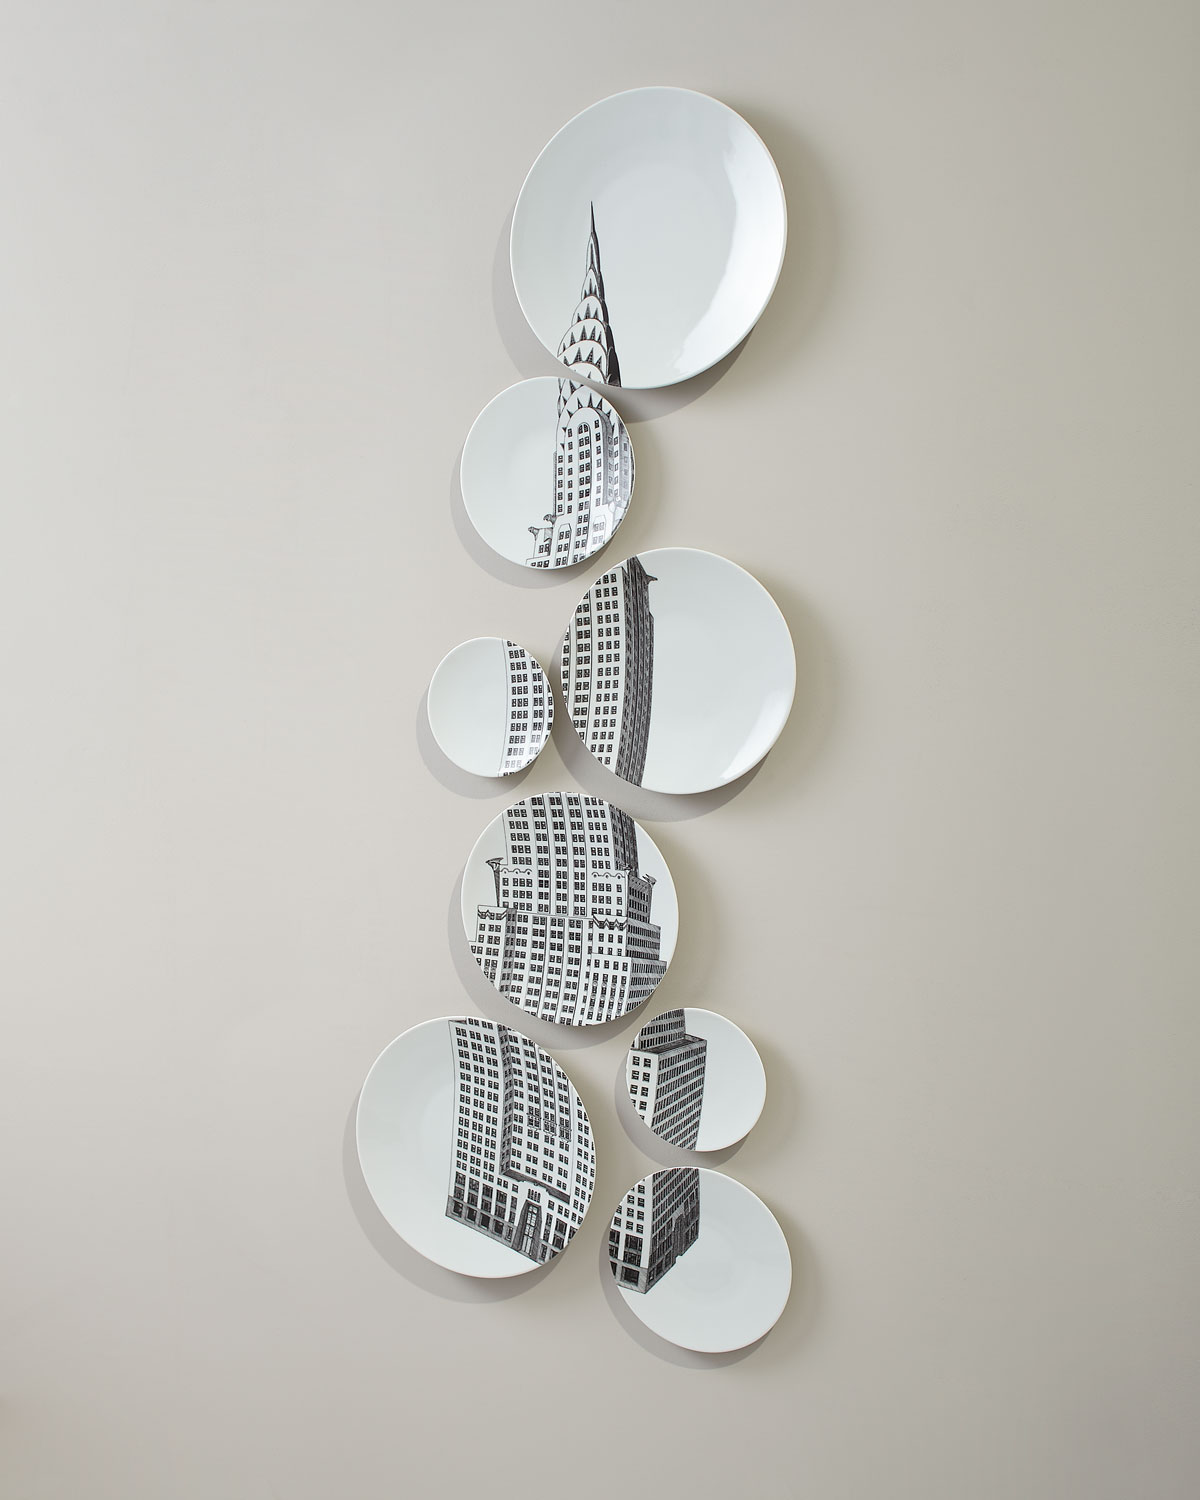 Manufacture De Longchamp Depuis 1832chrysler Building Plate Set